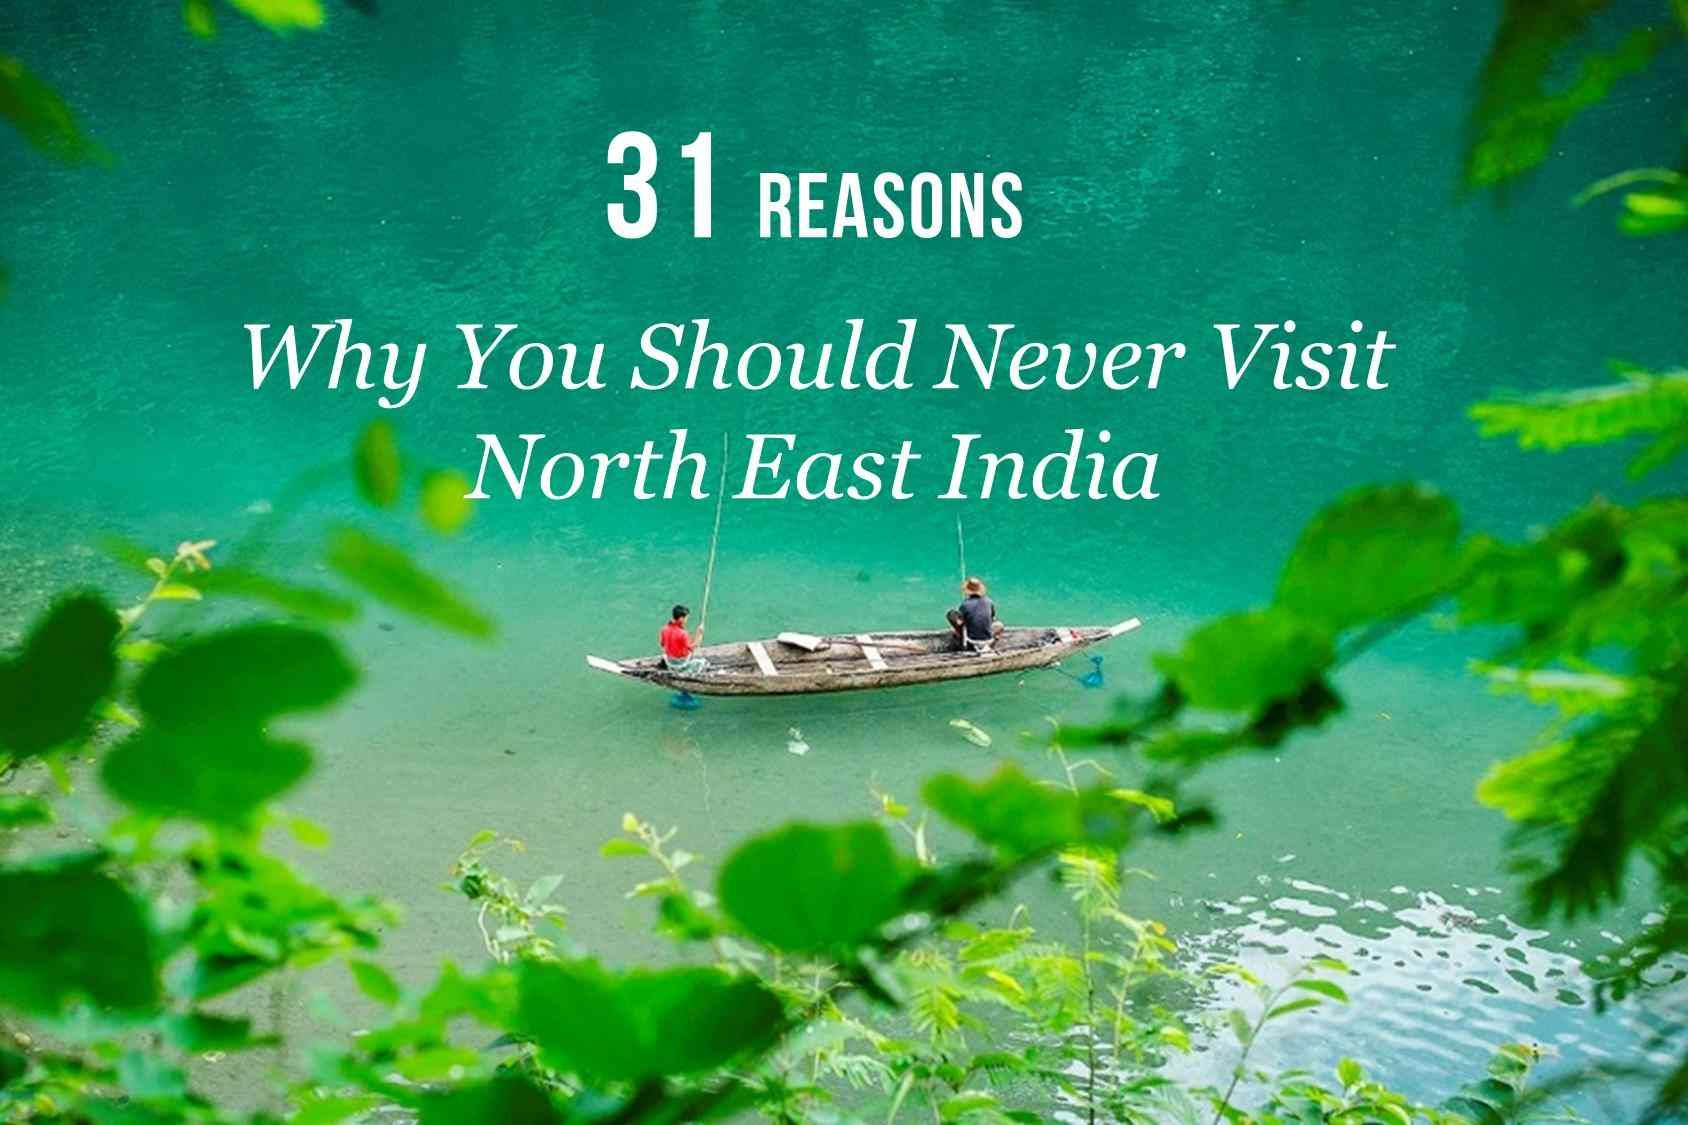 31 Reasons Why You Should Never Visit Northeast India 2020